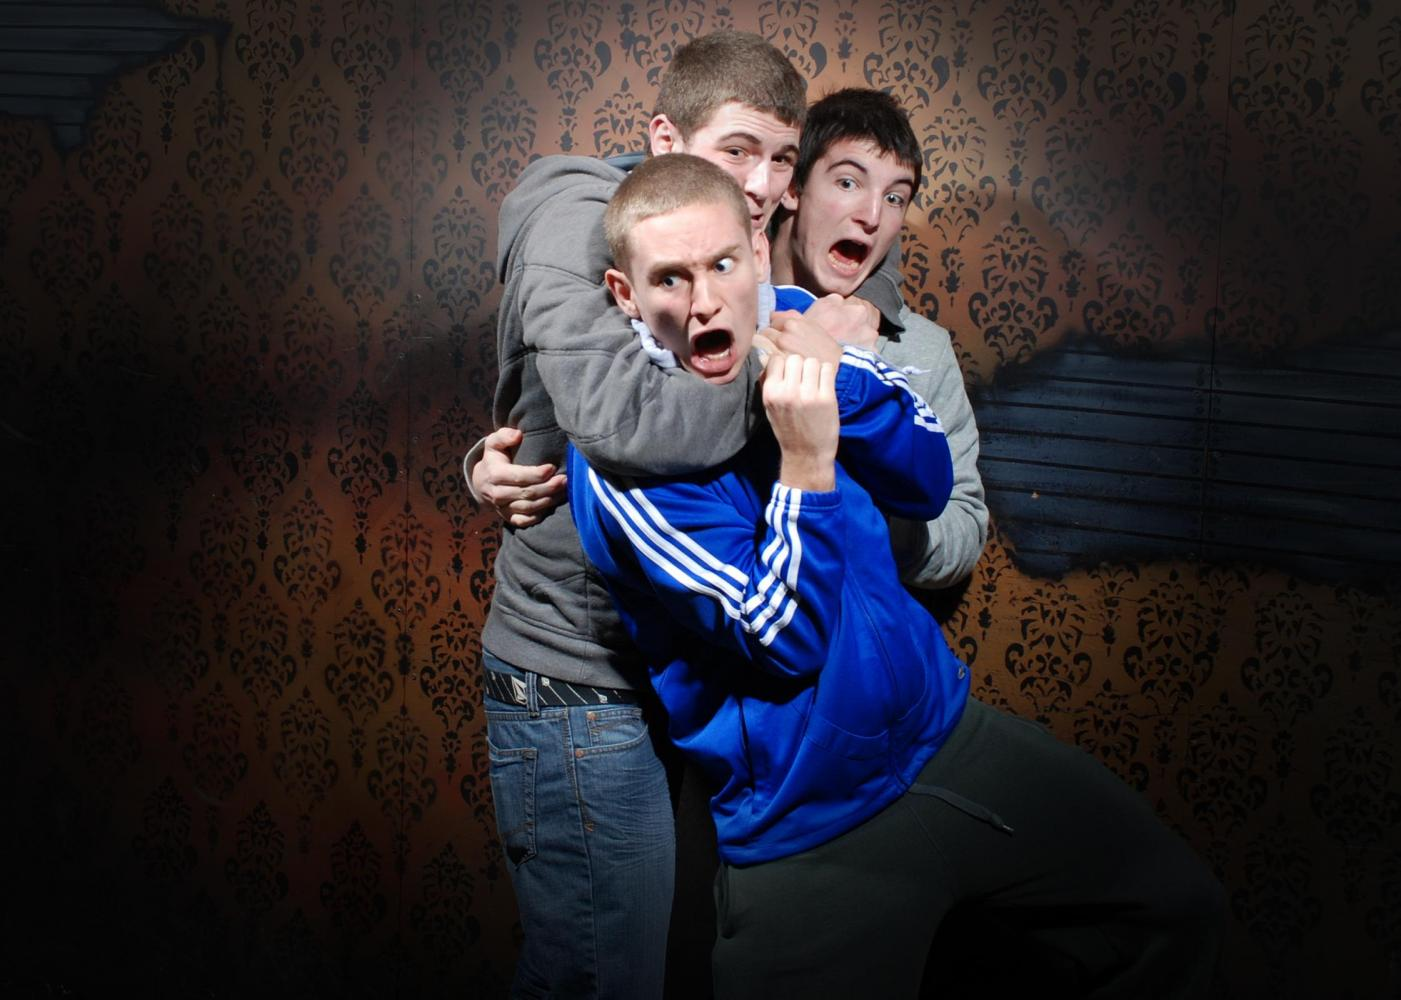 nightmares fear factory niagara falls attraction